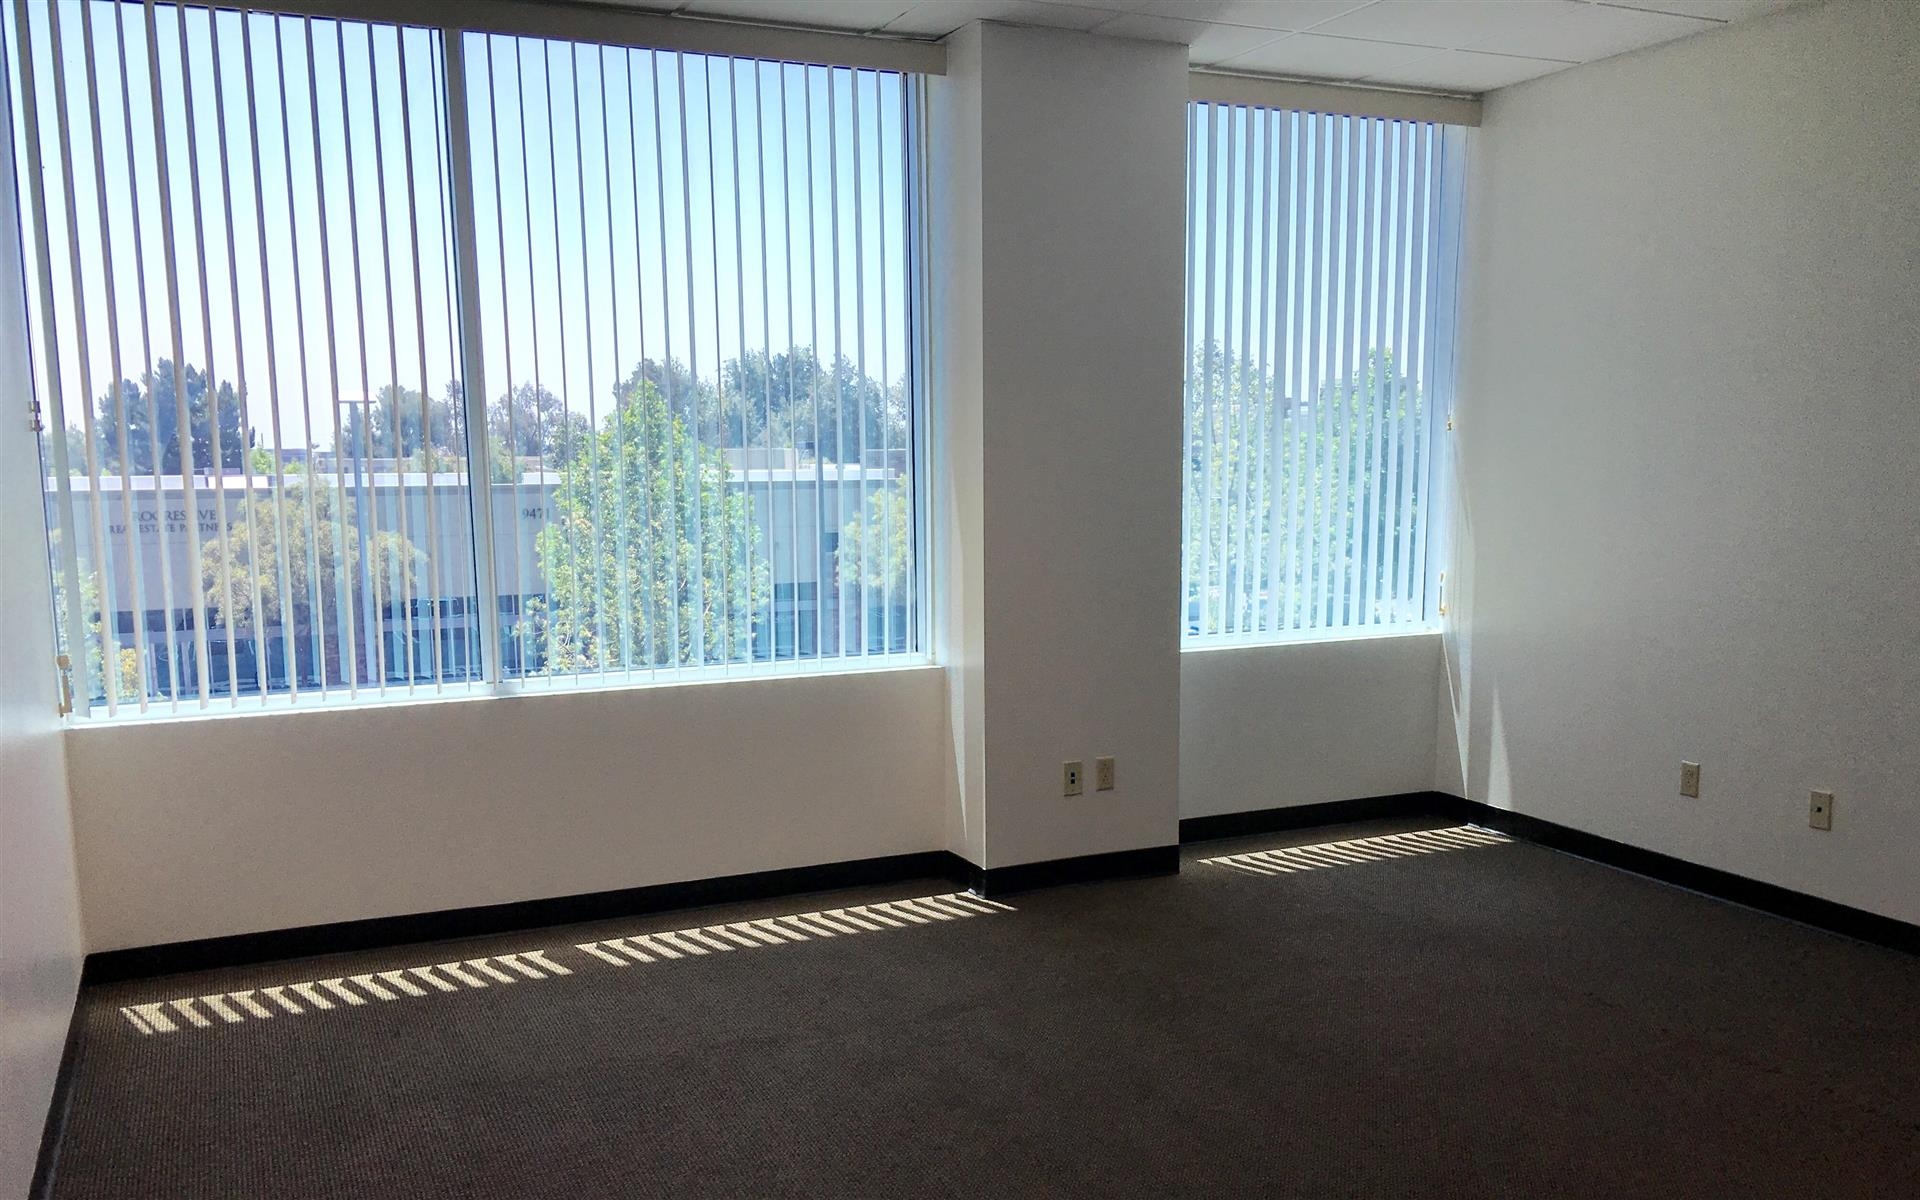 (HVN) The Executive Suite at Haven - Exterior Office